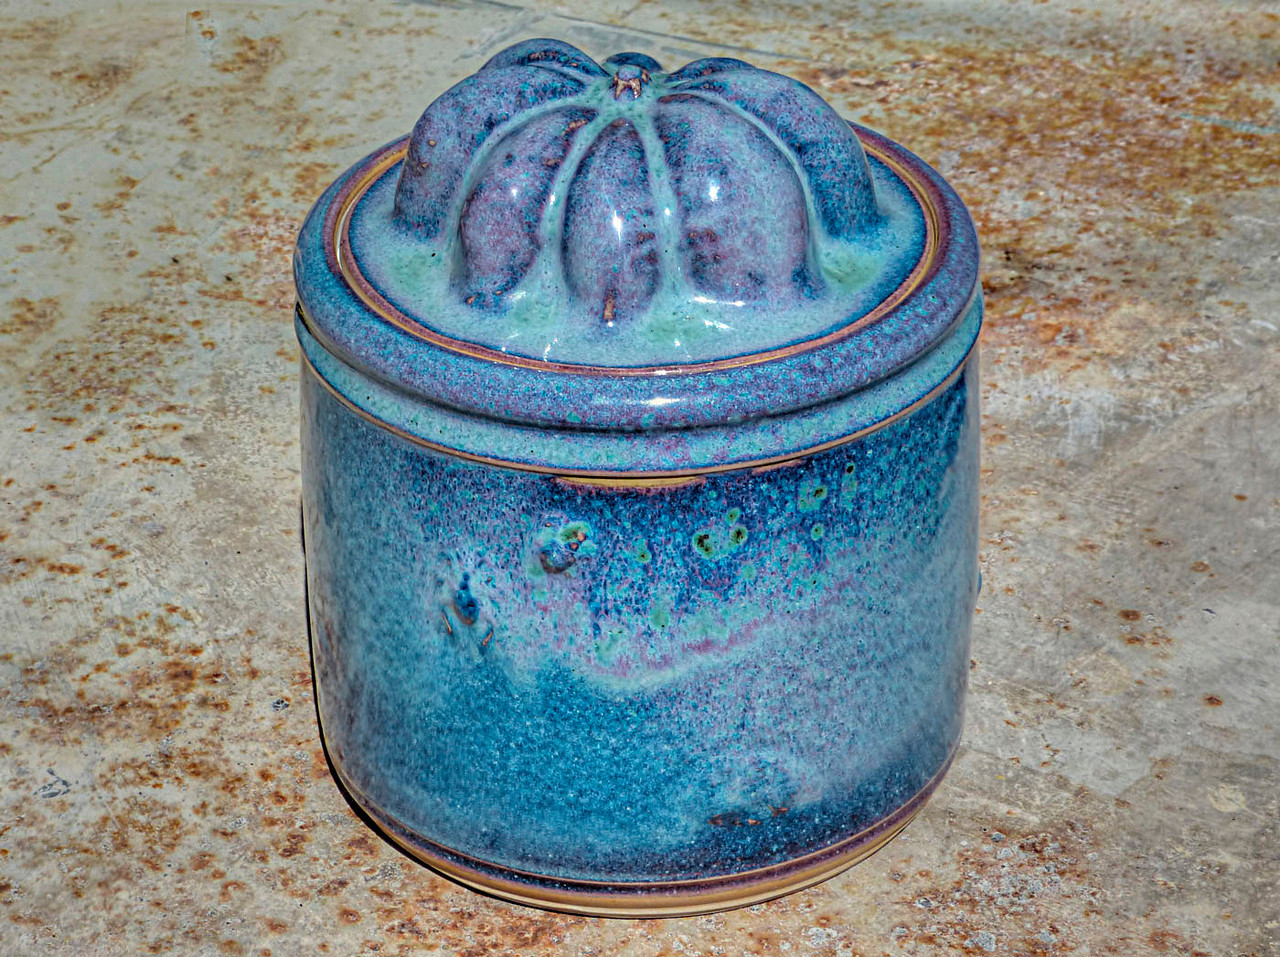 cone 10 reduction copper glaze - squash lid jar - 7 inches high - 6 inches wide